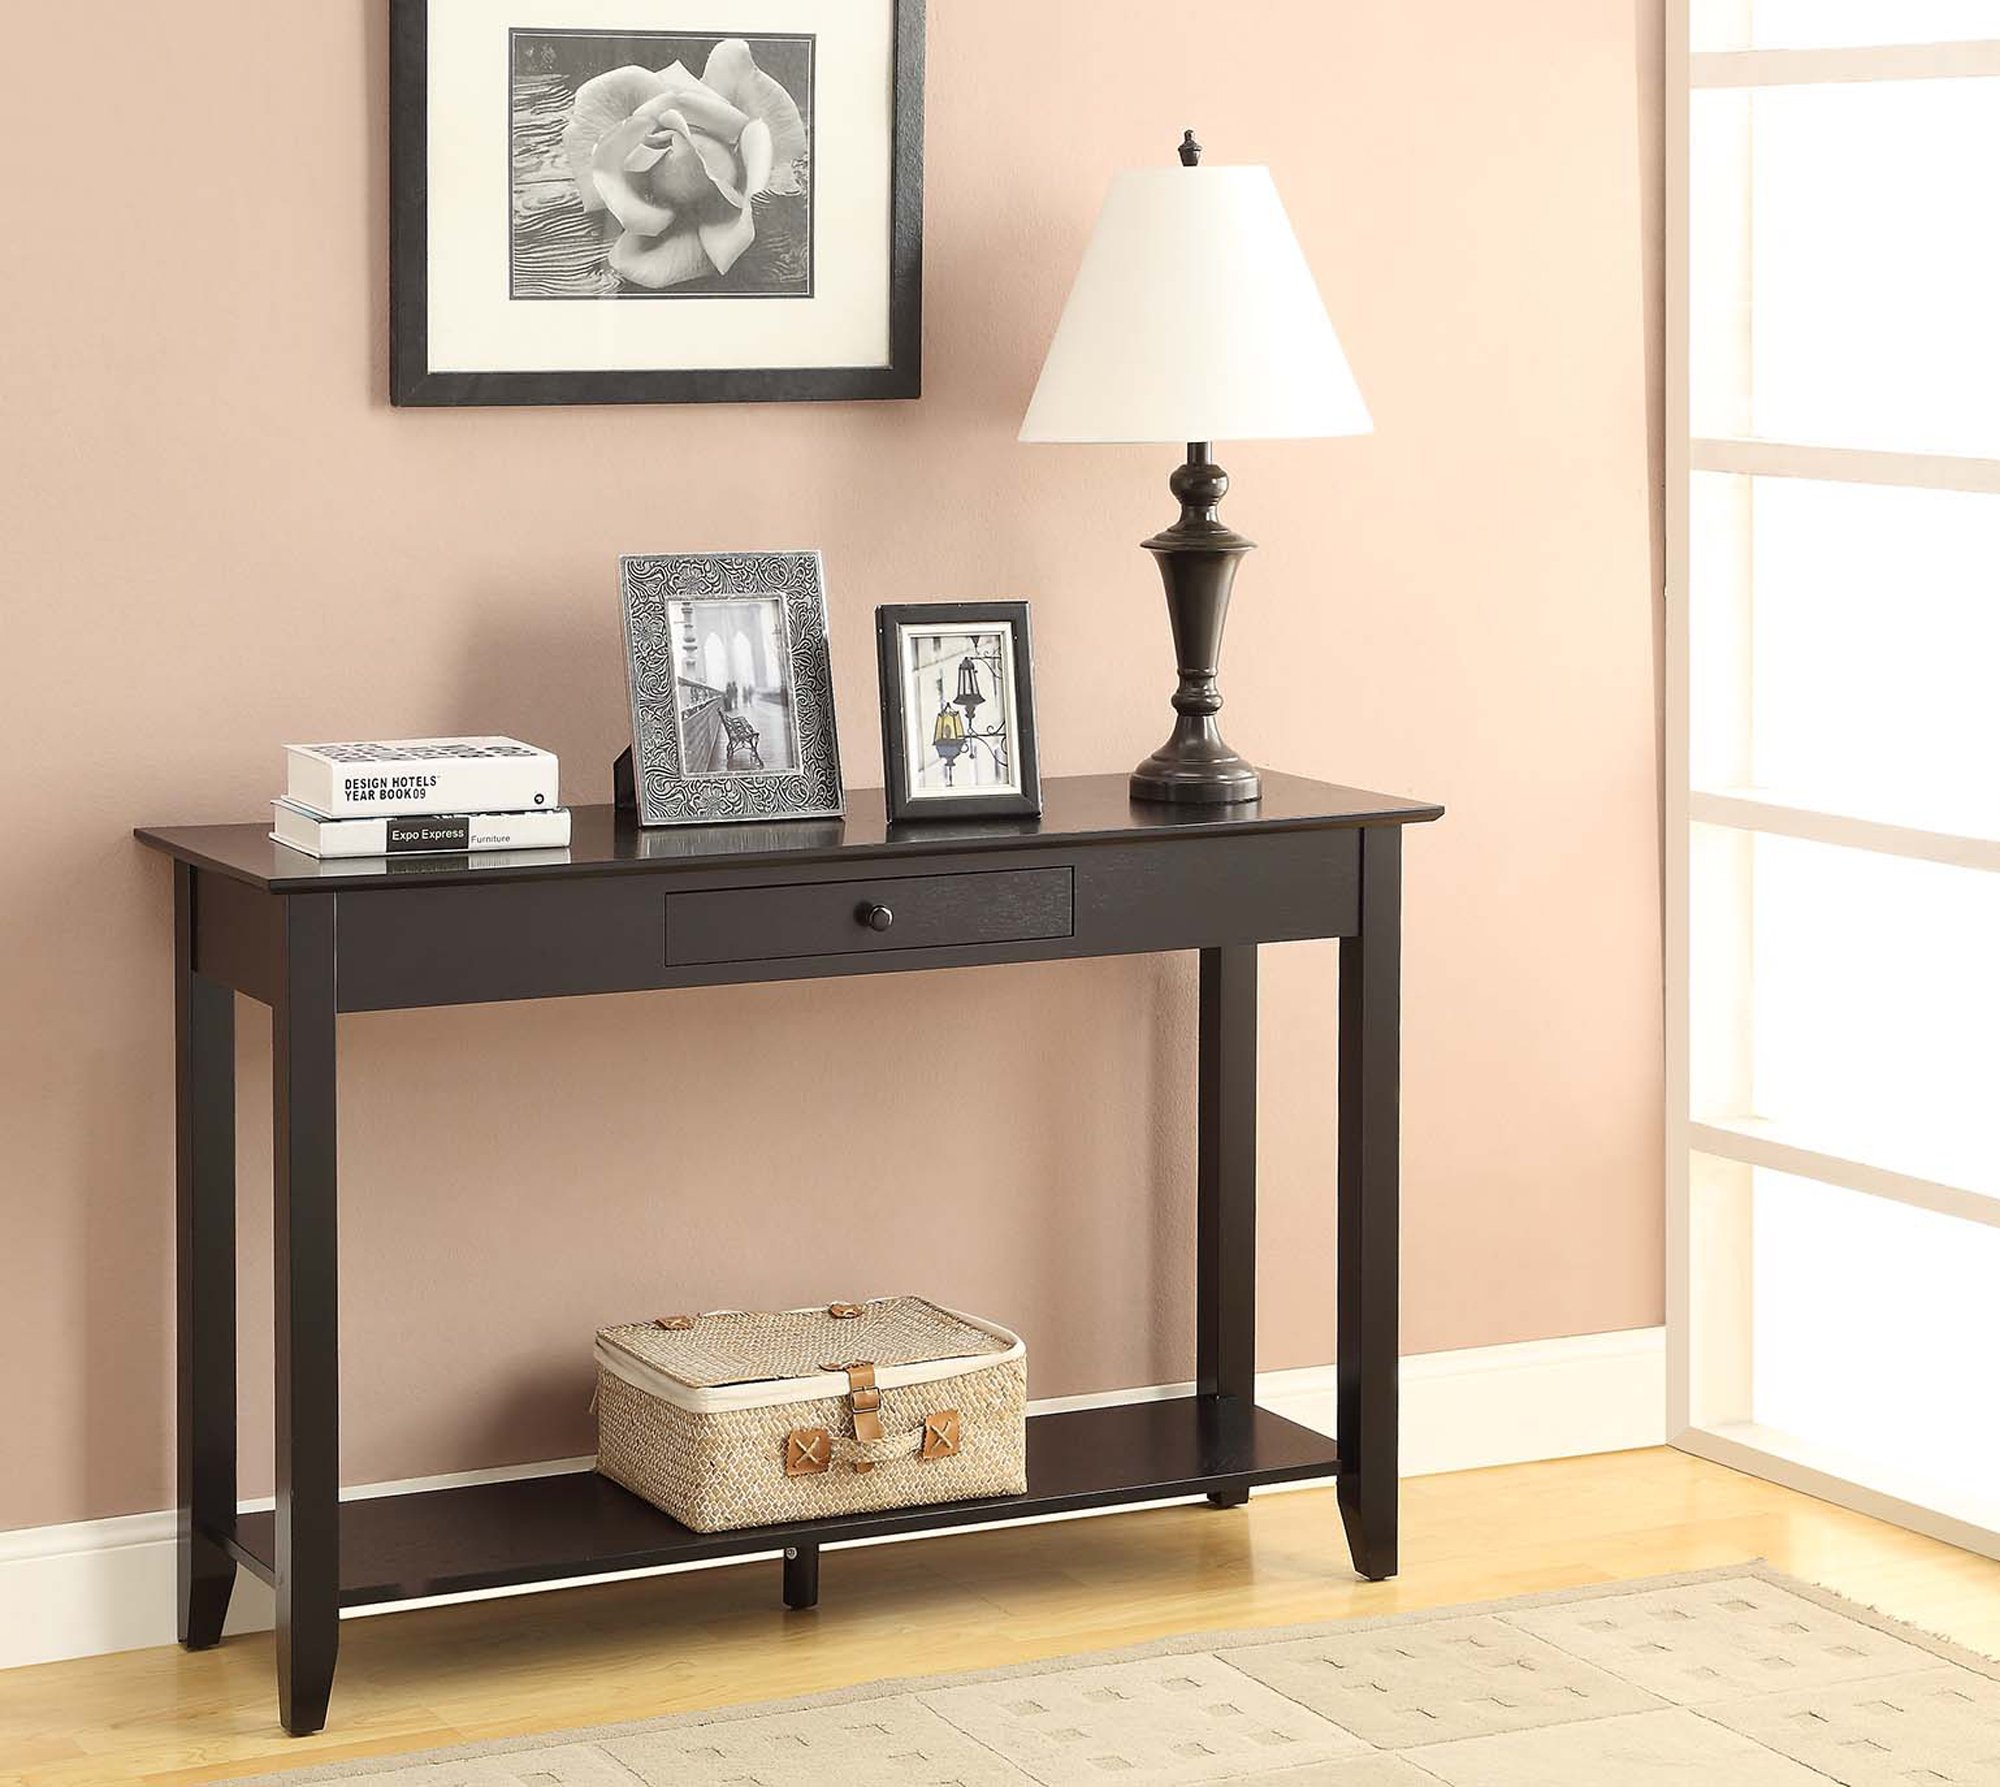 Convenience Concepts American Heritage Console Table with Drawer and Shelf, Black by Convenience Concepts